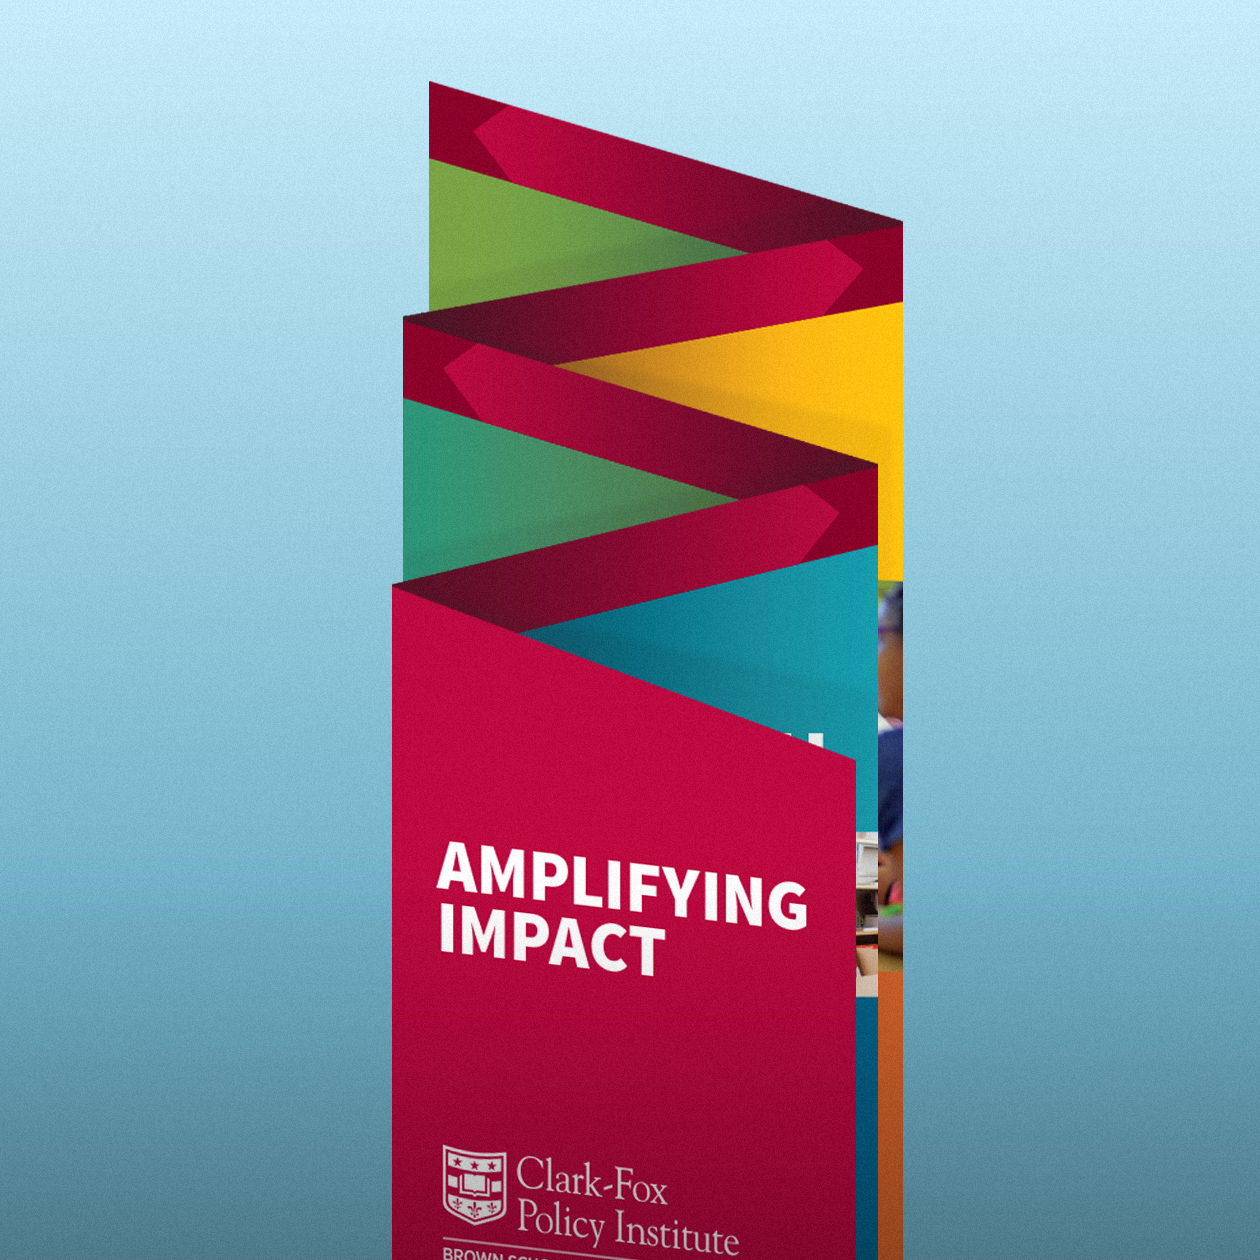 """Clark-Fox Policy Institute """"Amplifying Impact"""" – Launch event brochure"""